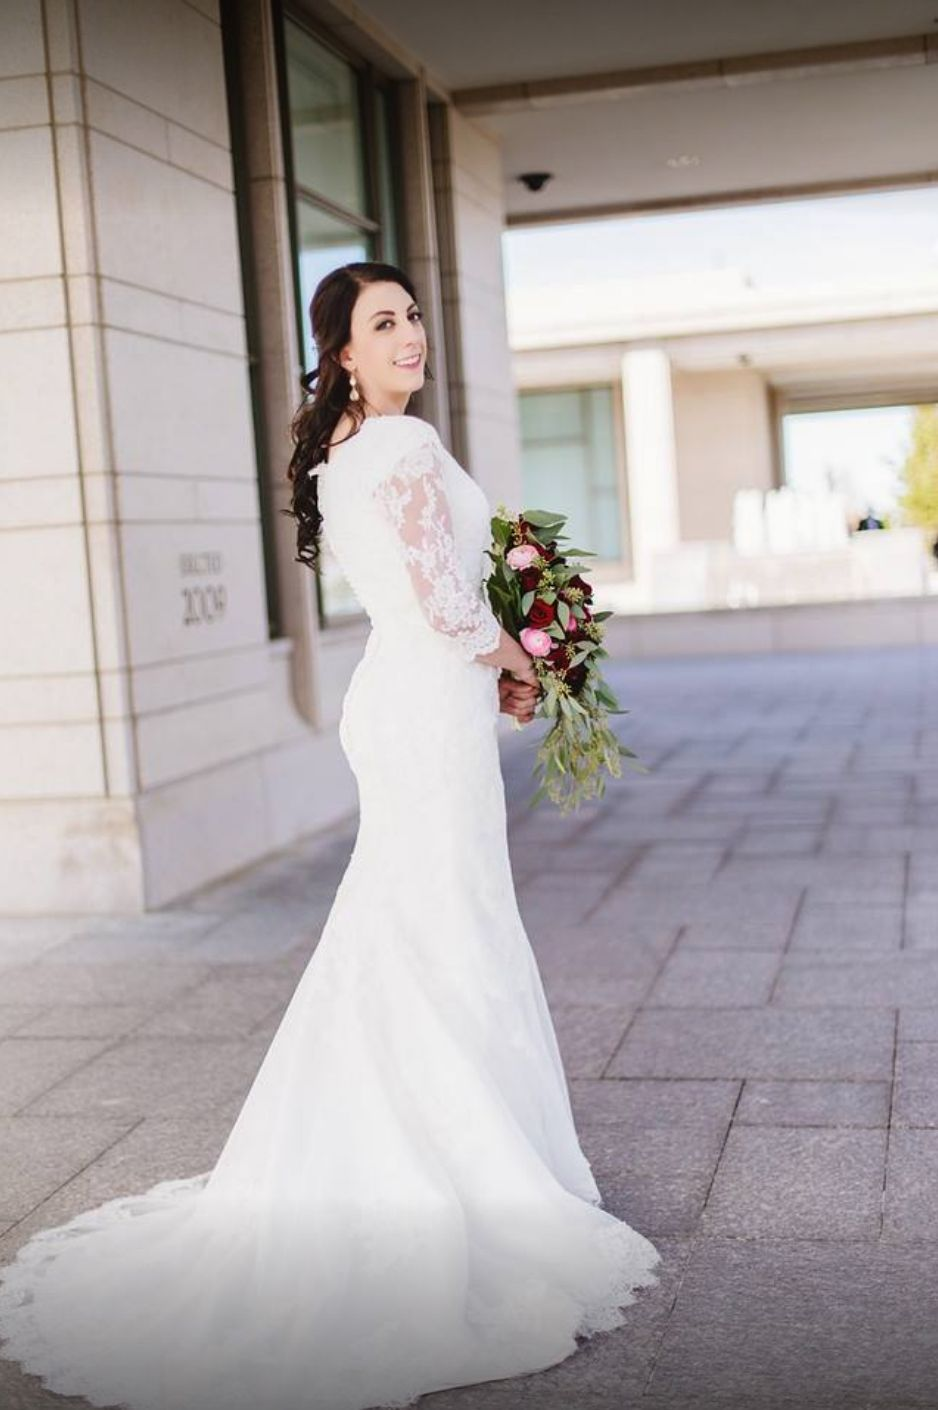 Contemporary And Modest Wedding Dresses From Exclusive Designers